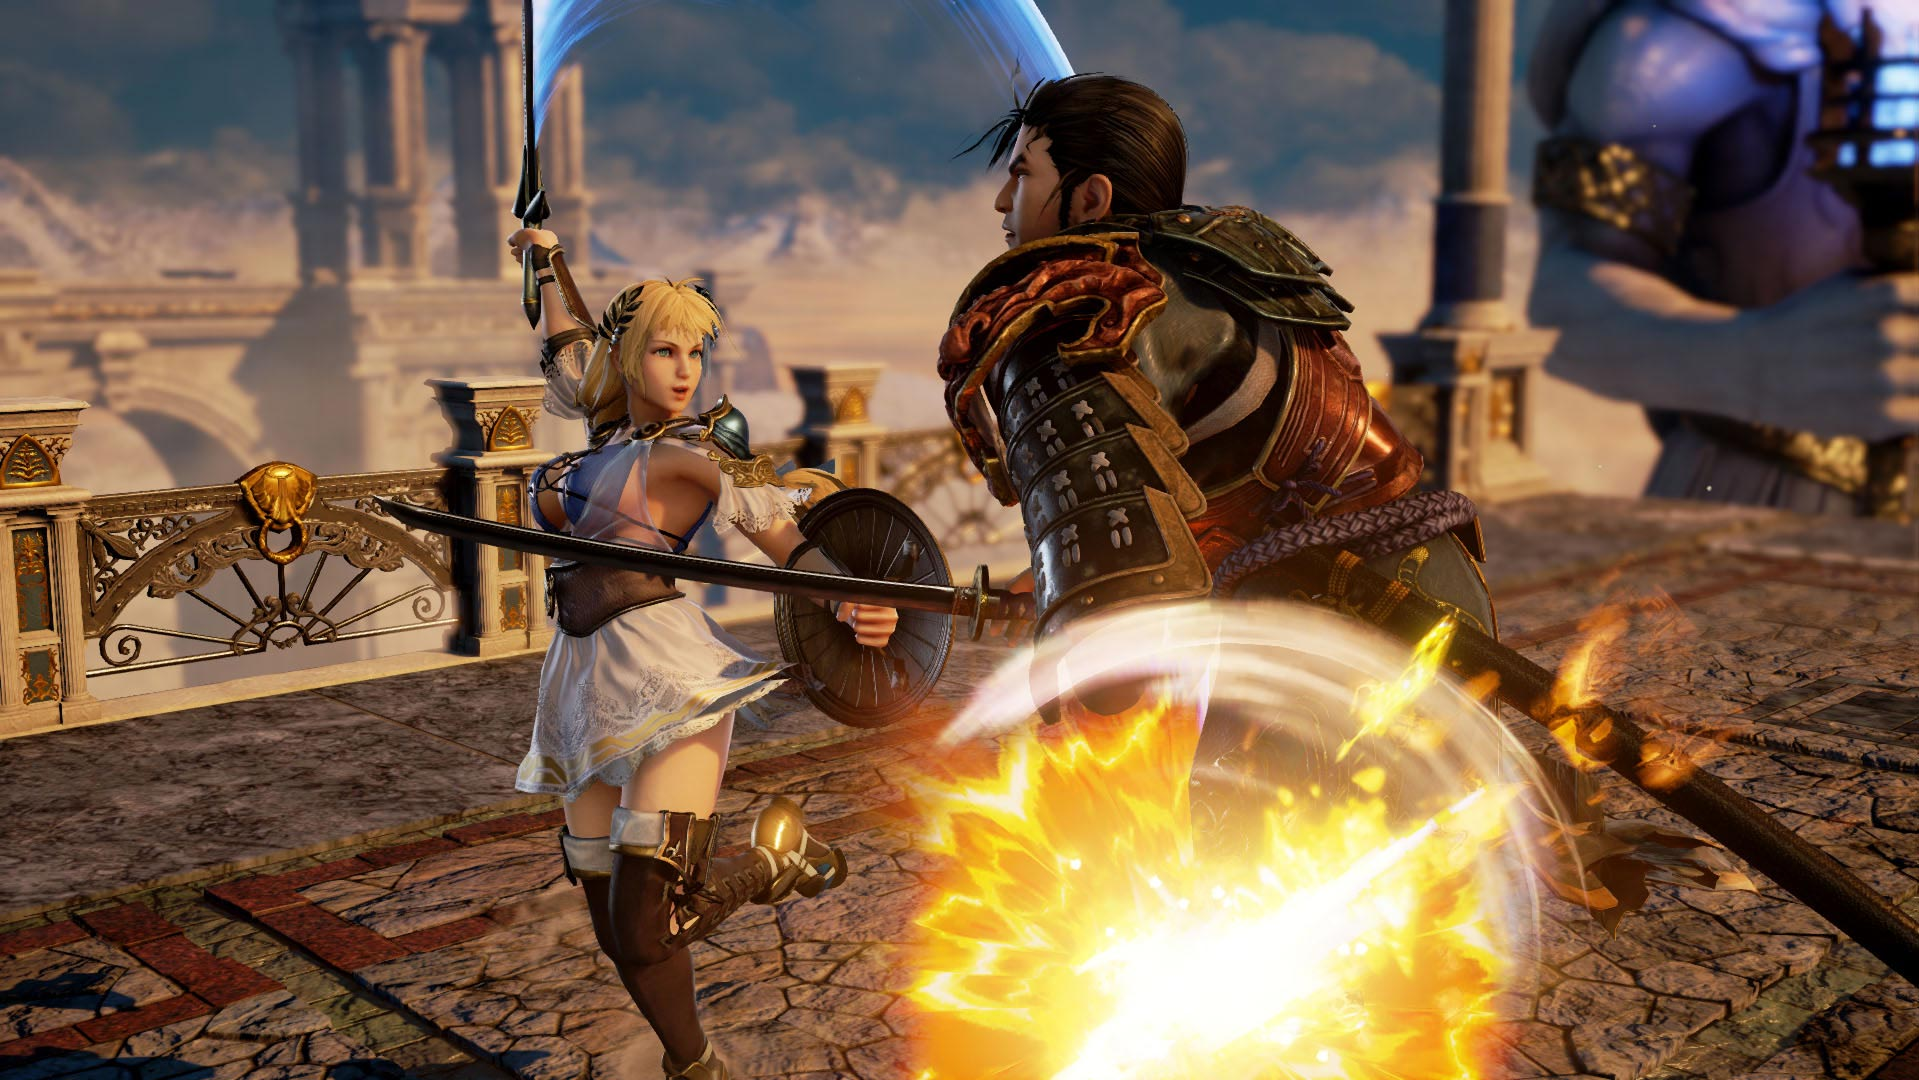 Soul Calibur 6 screeshots 5 out of 16 image gallery